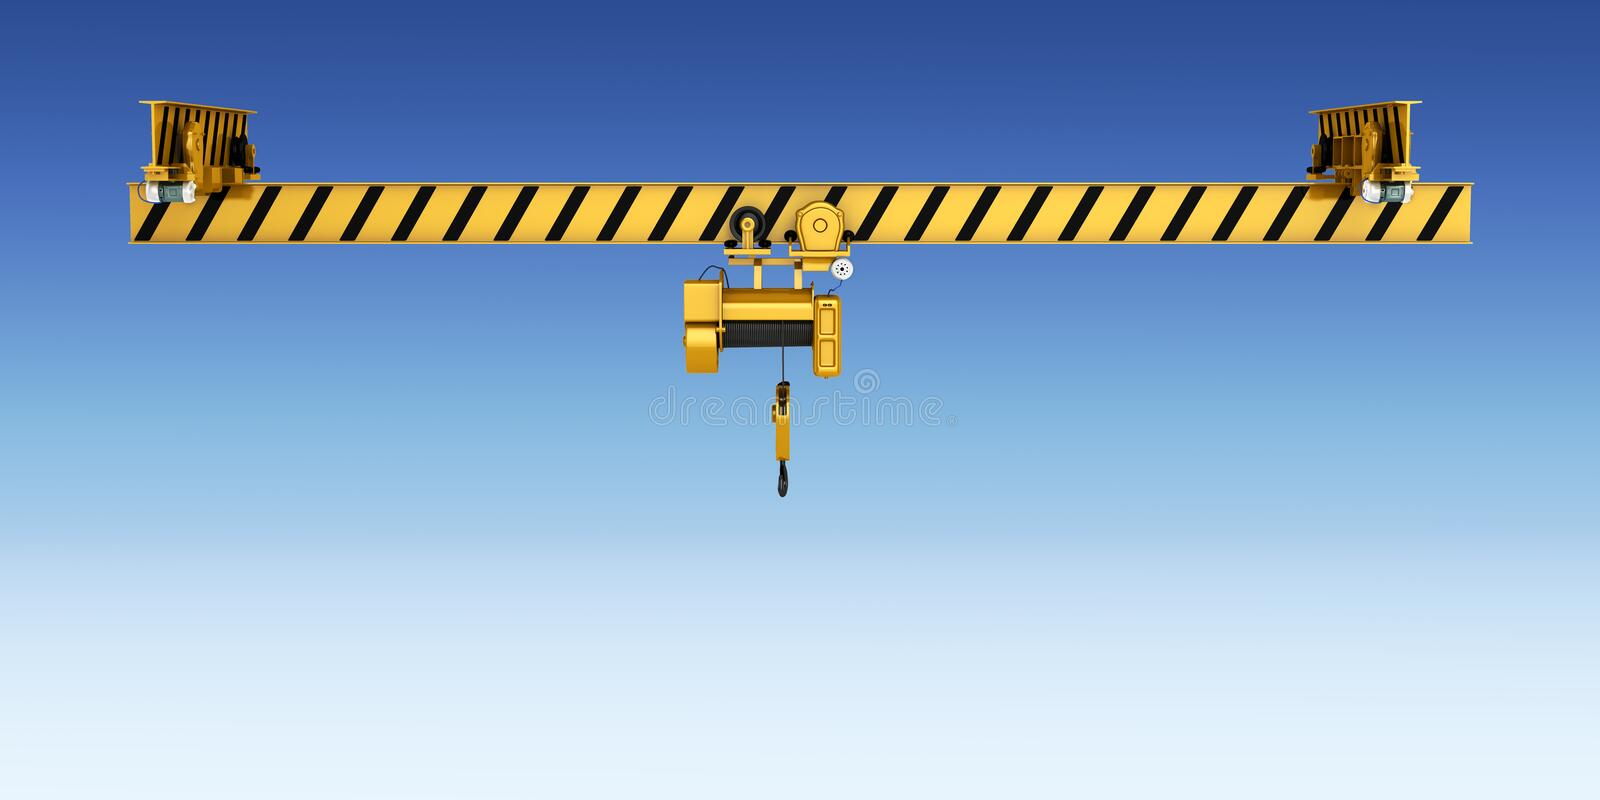 Overhead crane isolated on blue gradient background 3d vector illustration